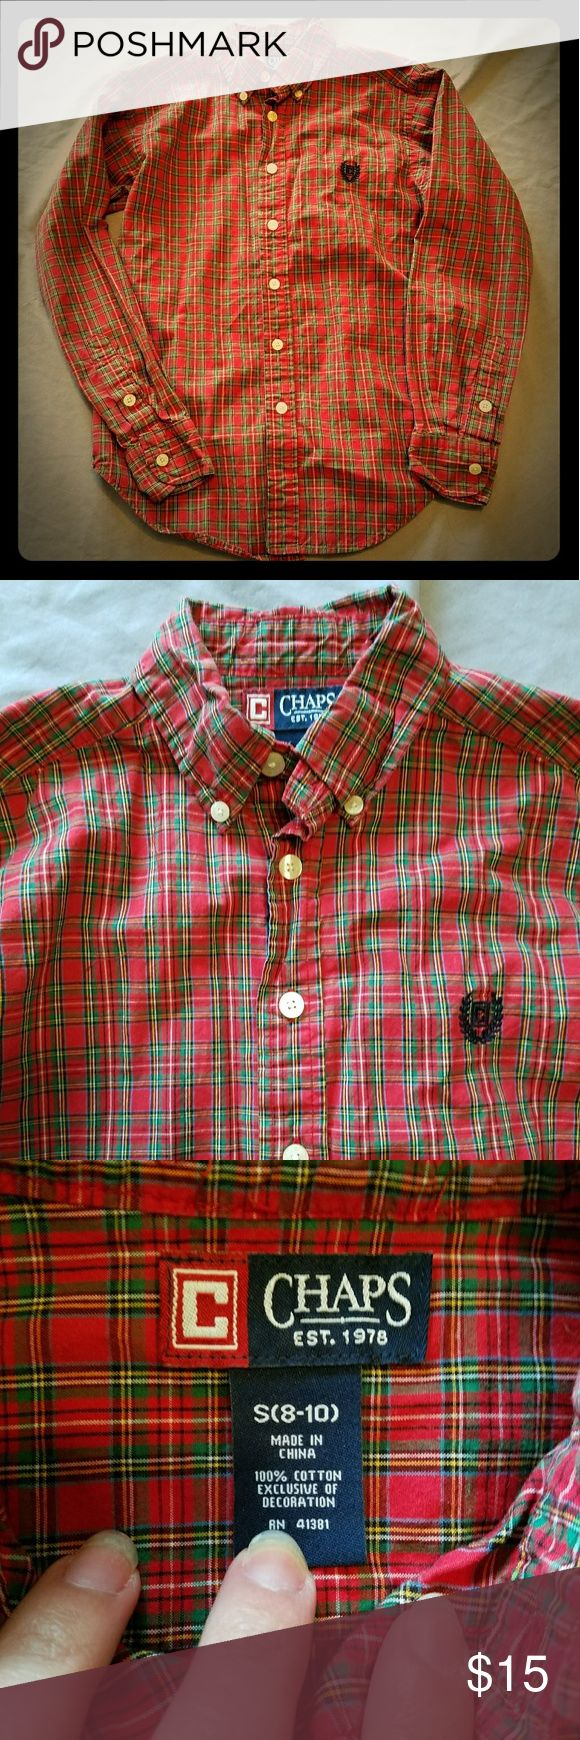 Boys Chaps Ralph Lauren buttonup plaid 8/10 Just washed but never worn.  My son hates buttonups. Size 8/10.  Chaps brand. Just needs ironed and its ready to go. Discounts on bundles  Feel free to make a reasonable offer Chaps Shirts & Tops Button Down Shirts